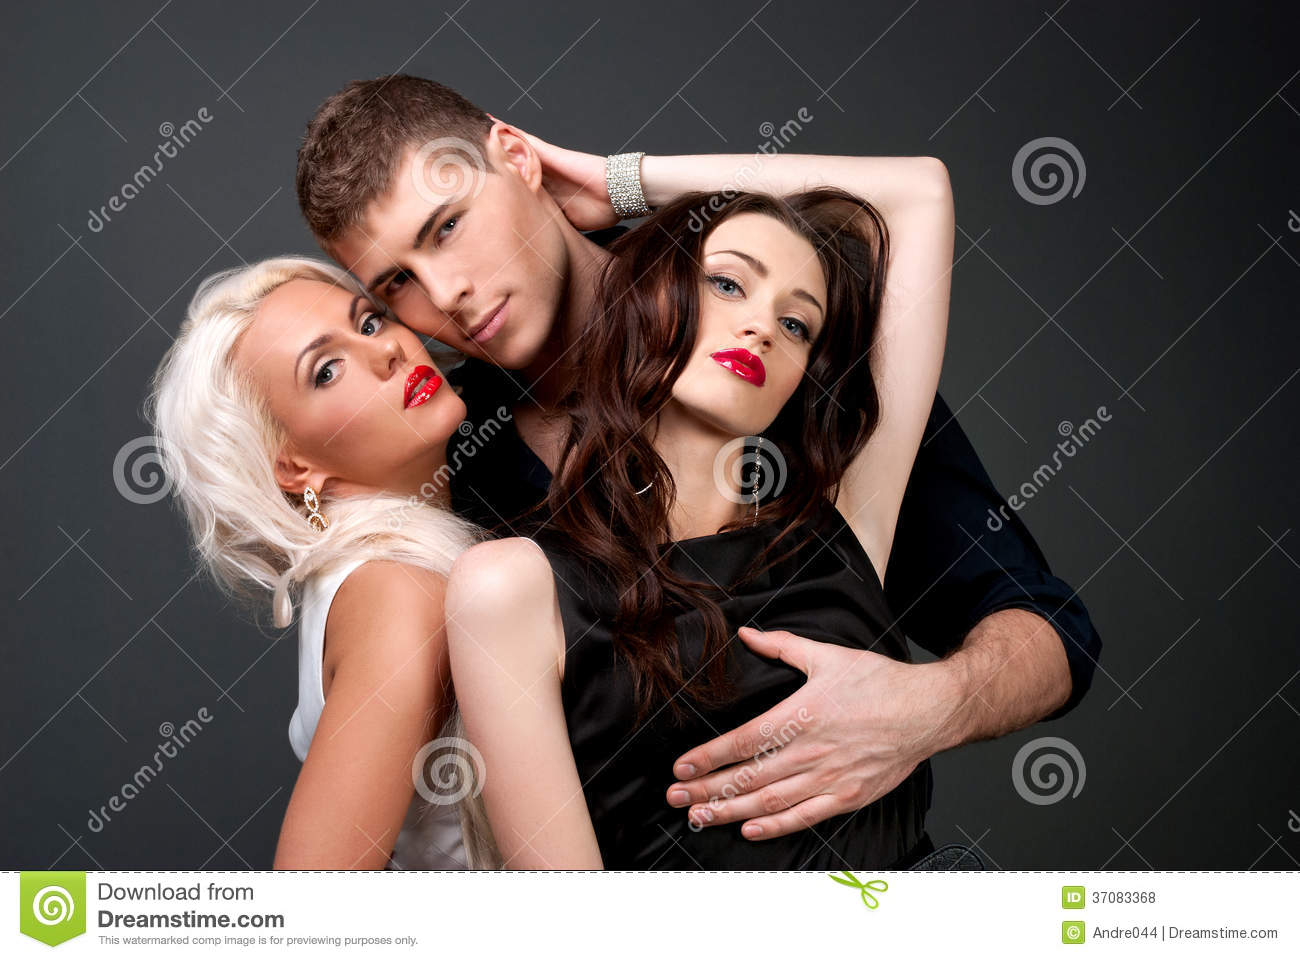 Royalty Free Stock Image Handsome Man Male Models Picture